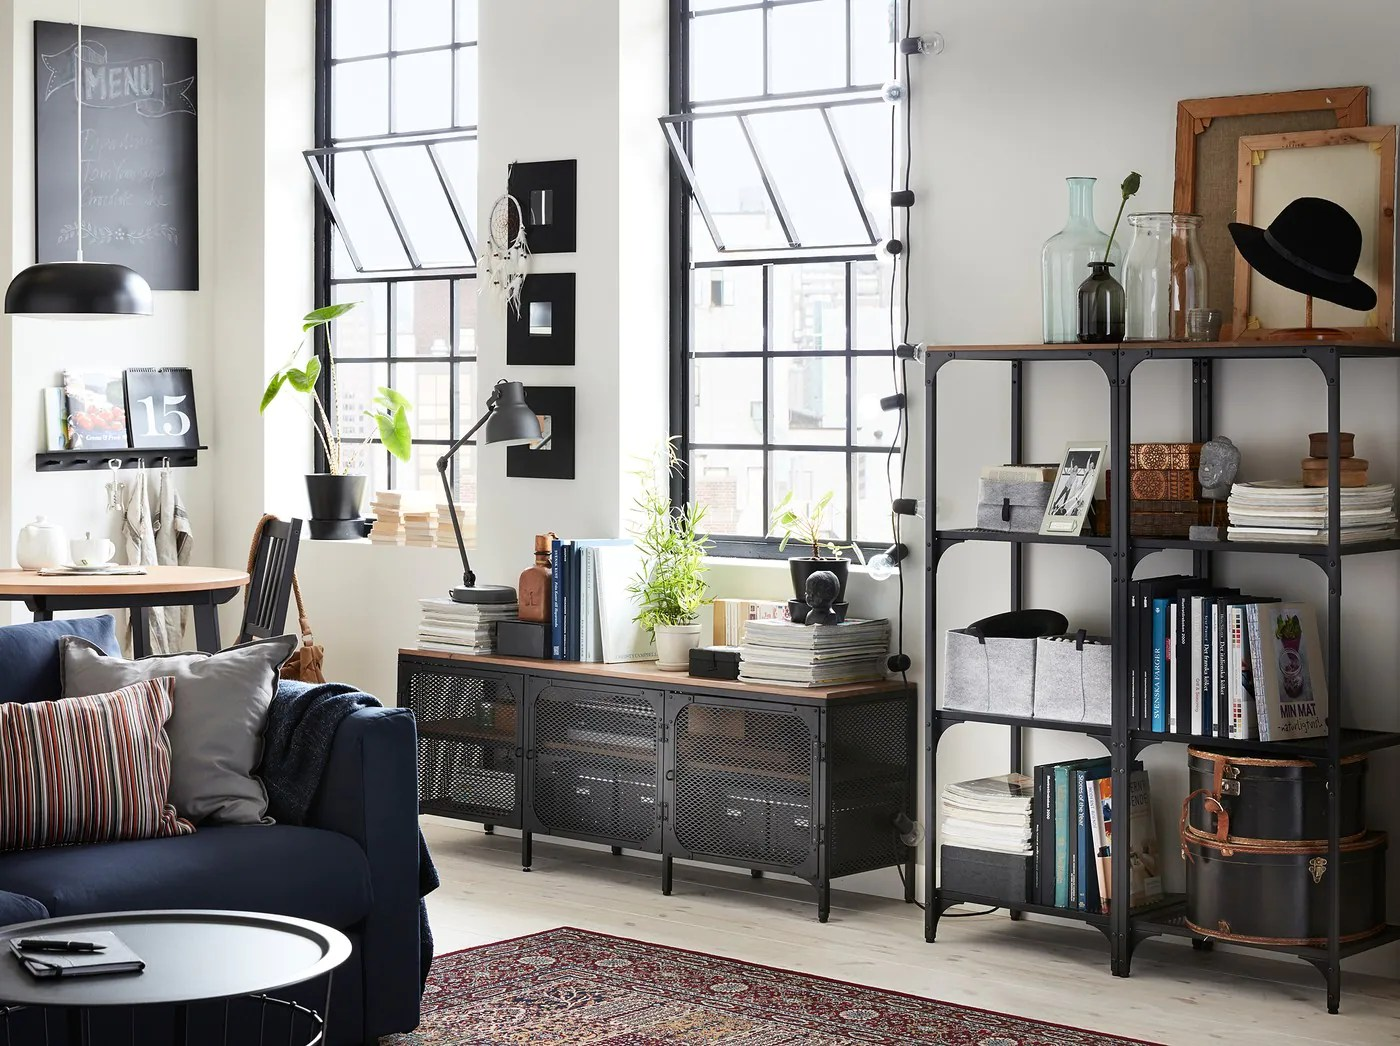 Buffet Enfilade Ikea Industrial Style That's Raw Yet Homely - Ikea